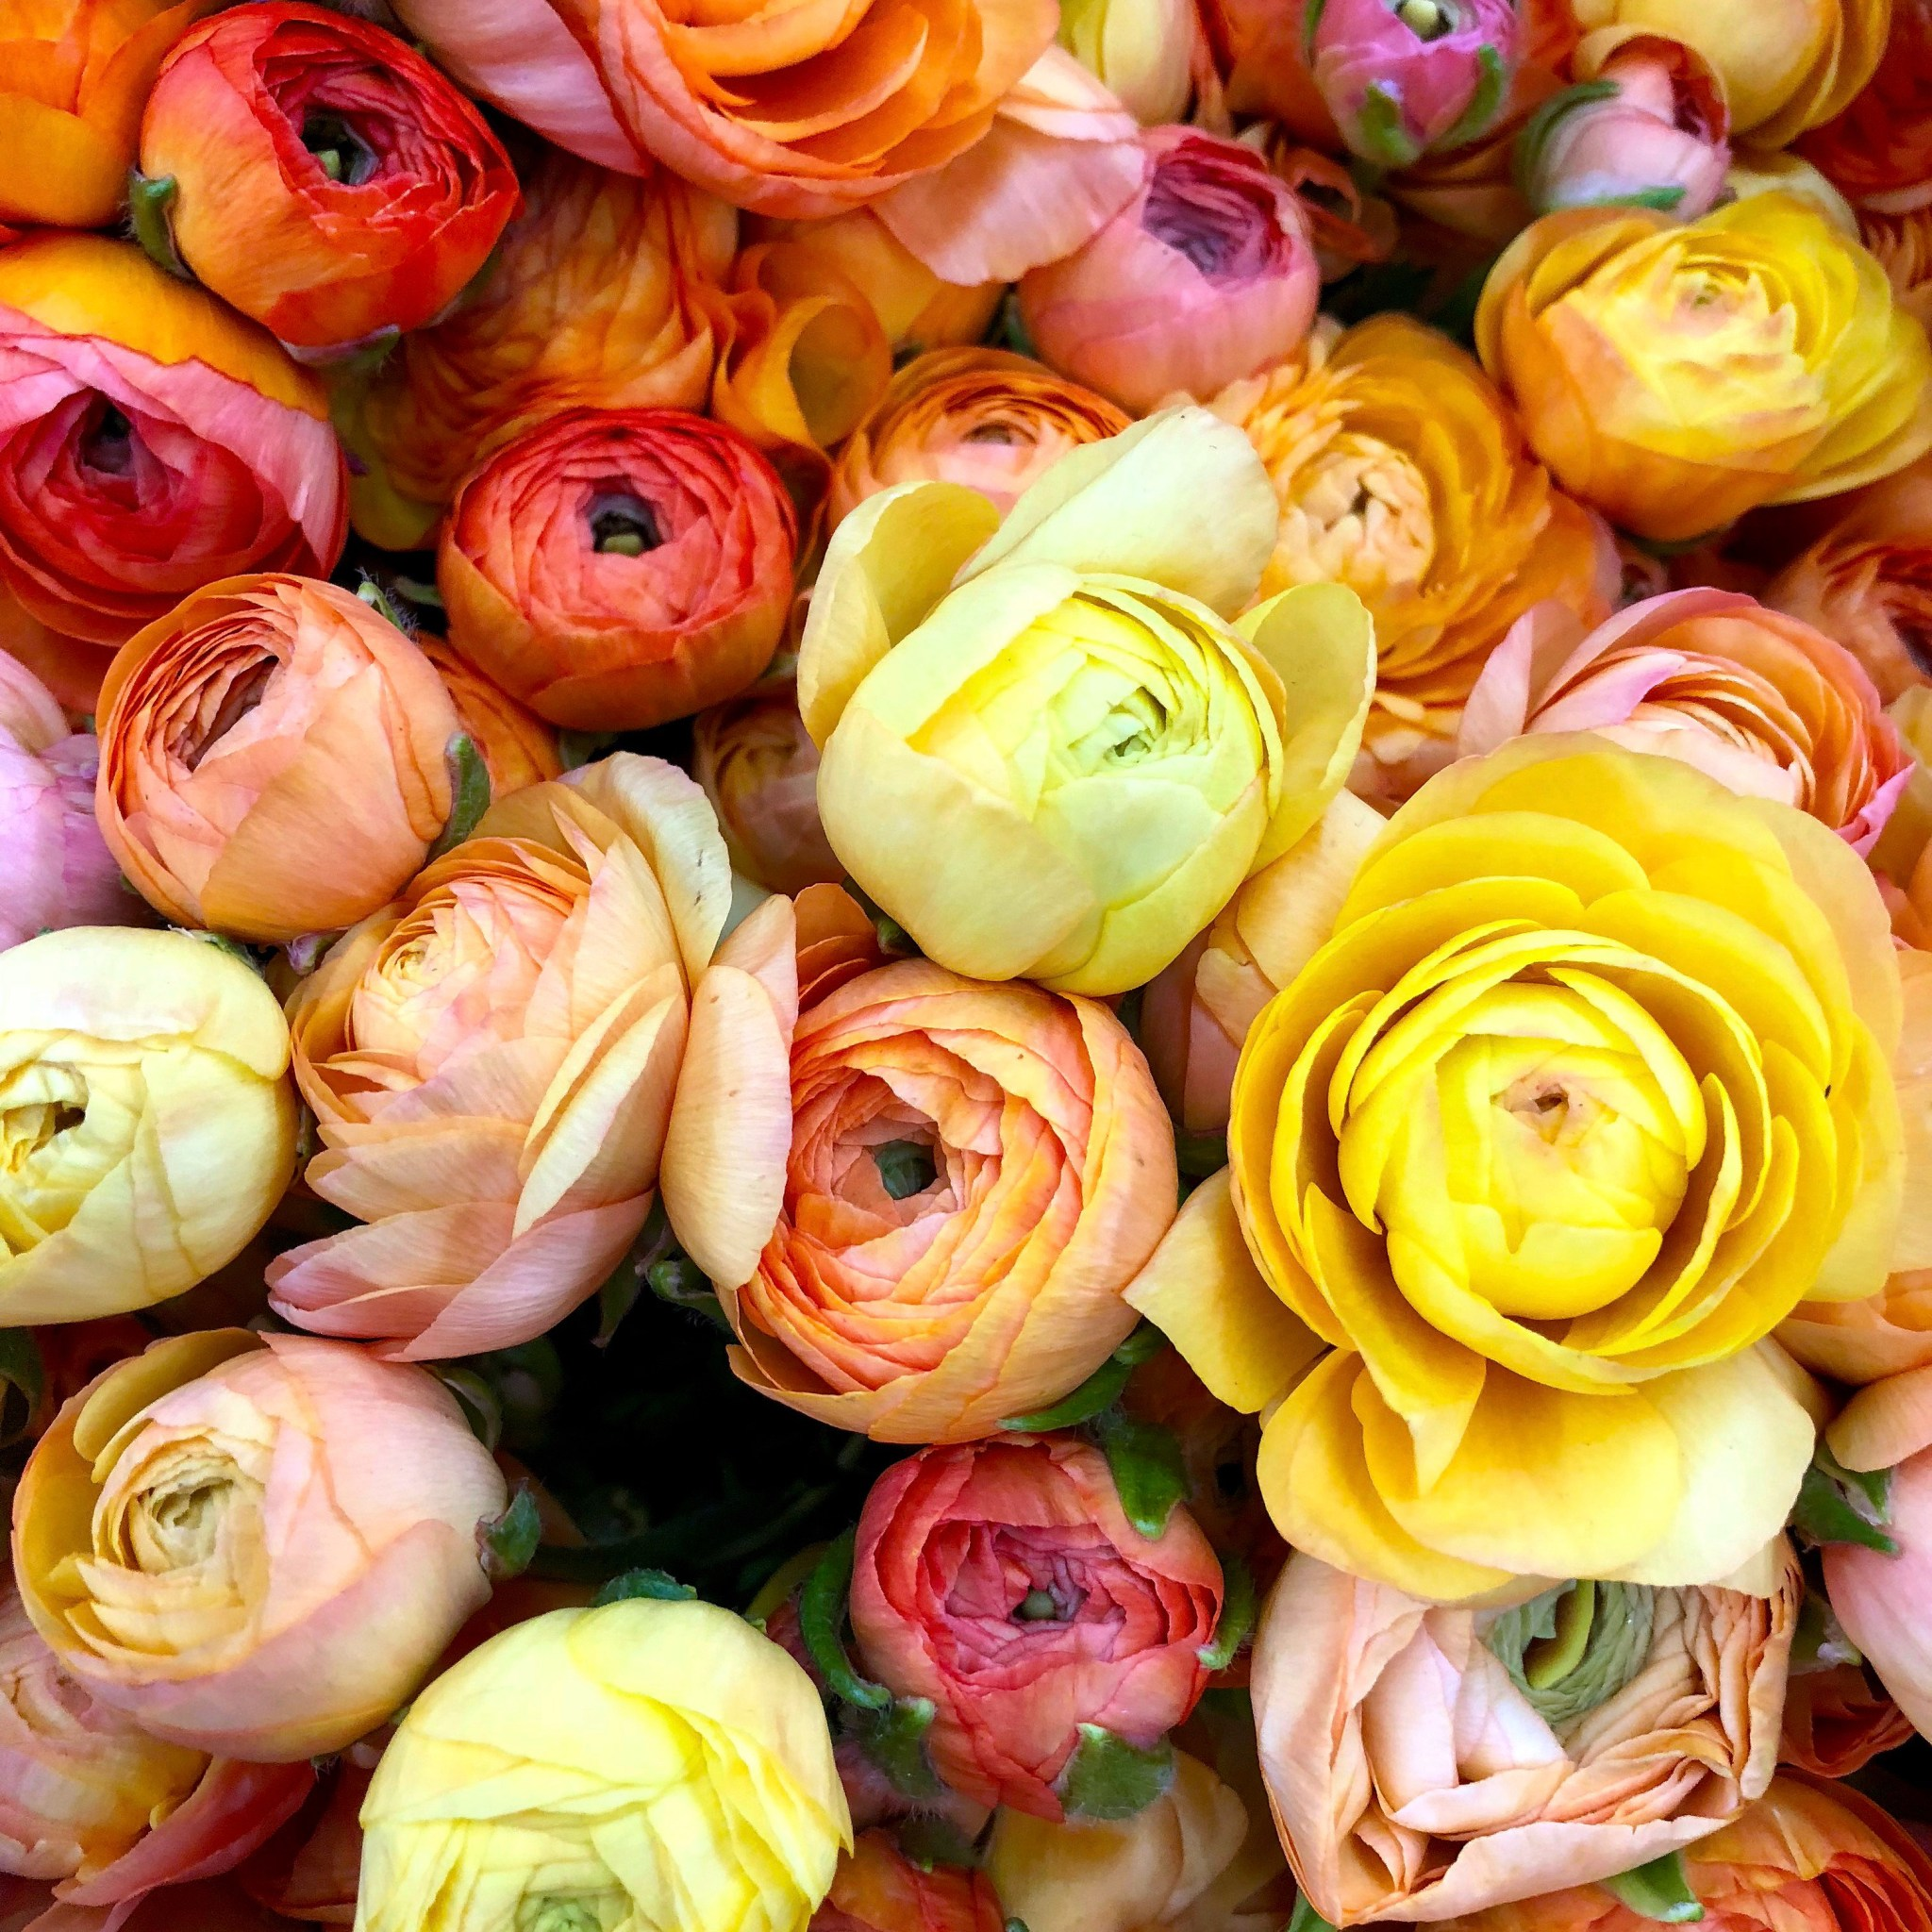 The Original Los Angeles Flower Market #ranunculus